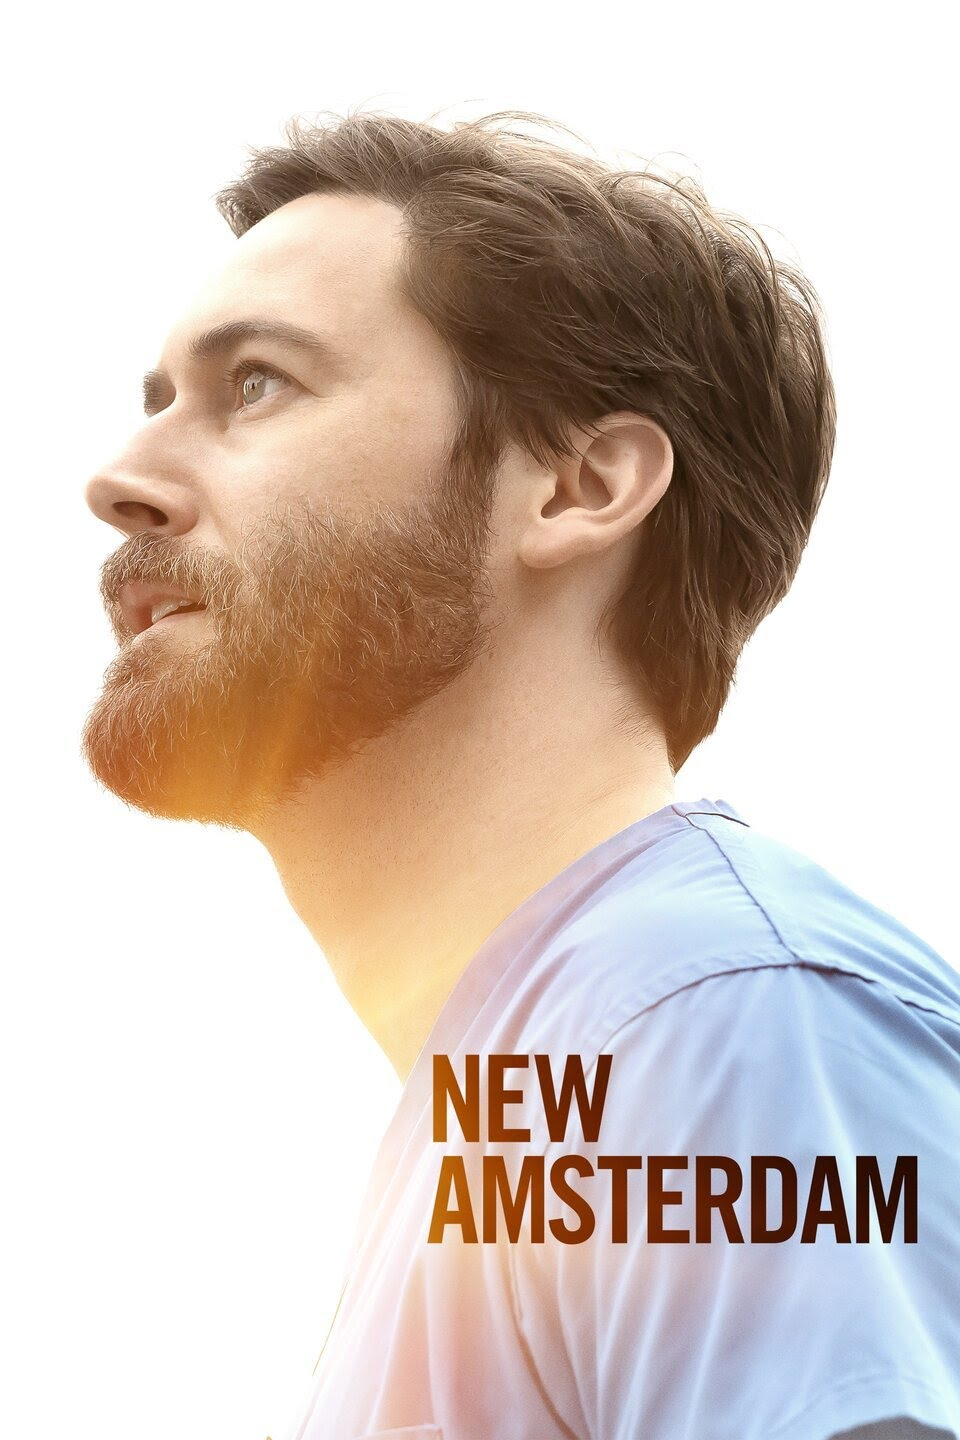 New Amsterdam - Season 3 Episode 9 - Disconnected